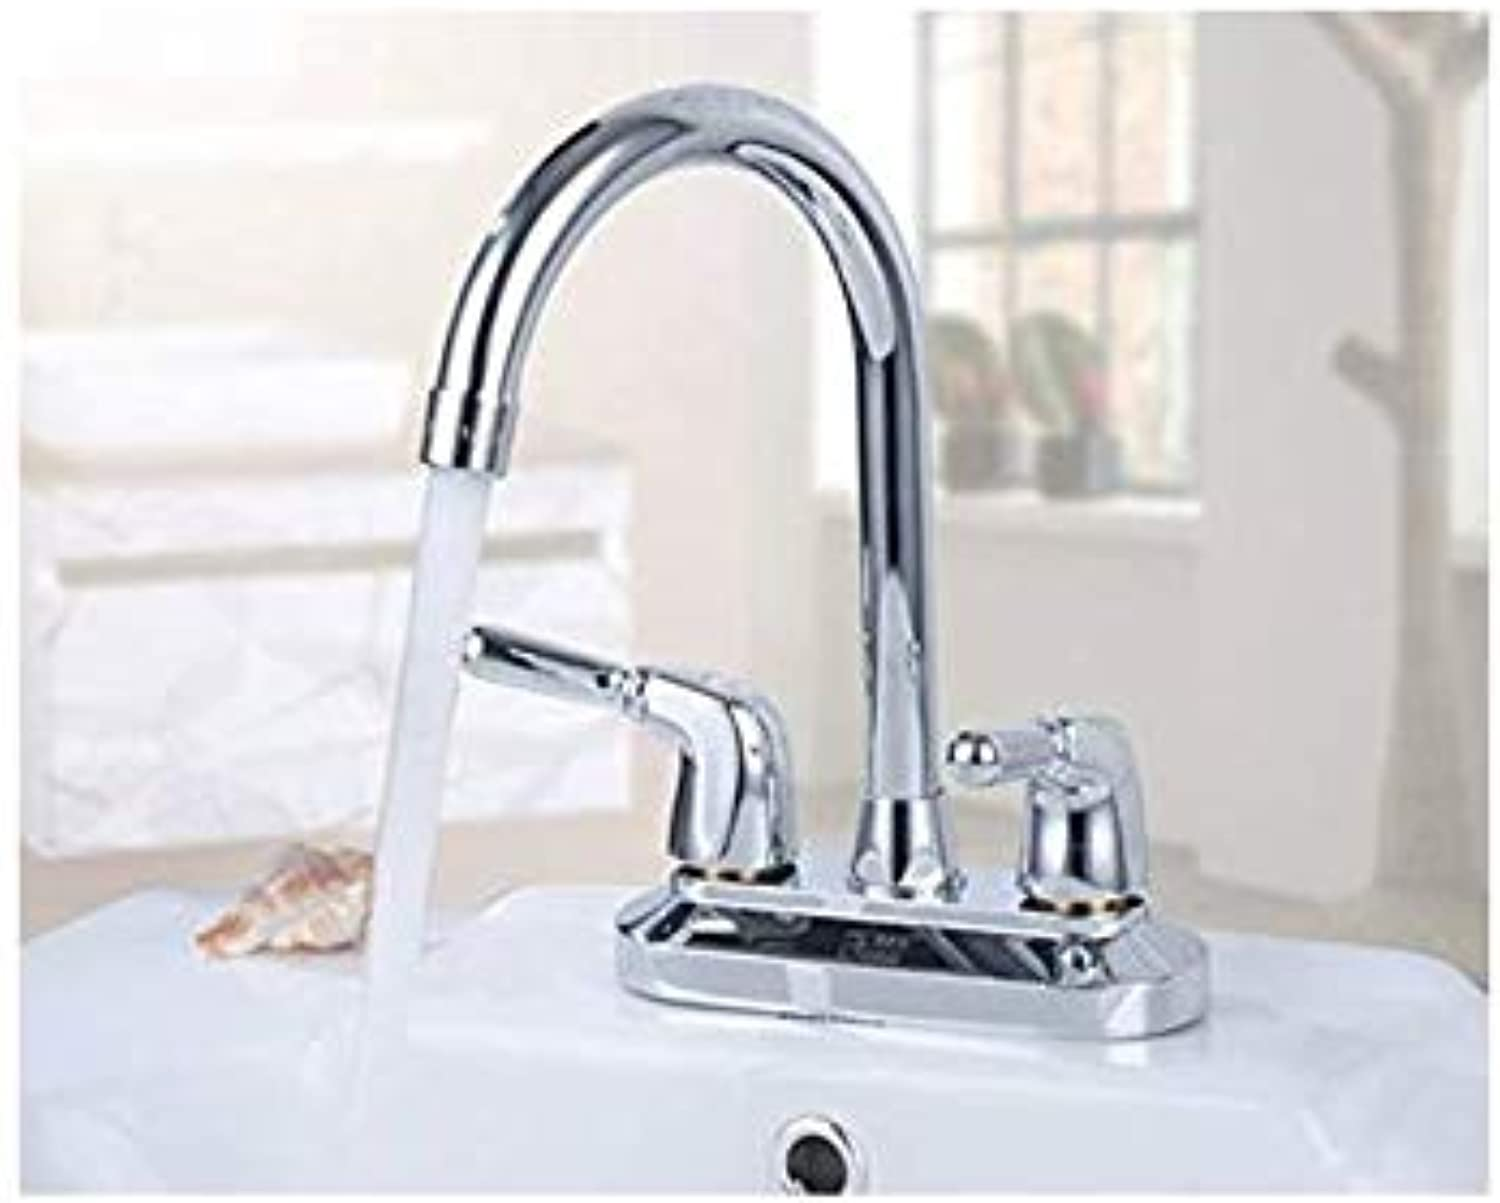 Faucet Hot and Cold Washroom Washbasin, Basin Faucet, Double Double Hole Basin Basin Faucet Thickened Copper Tap,A